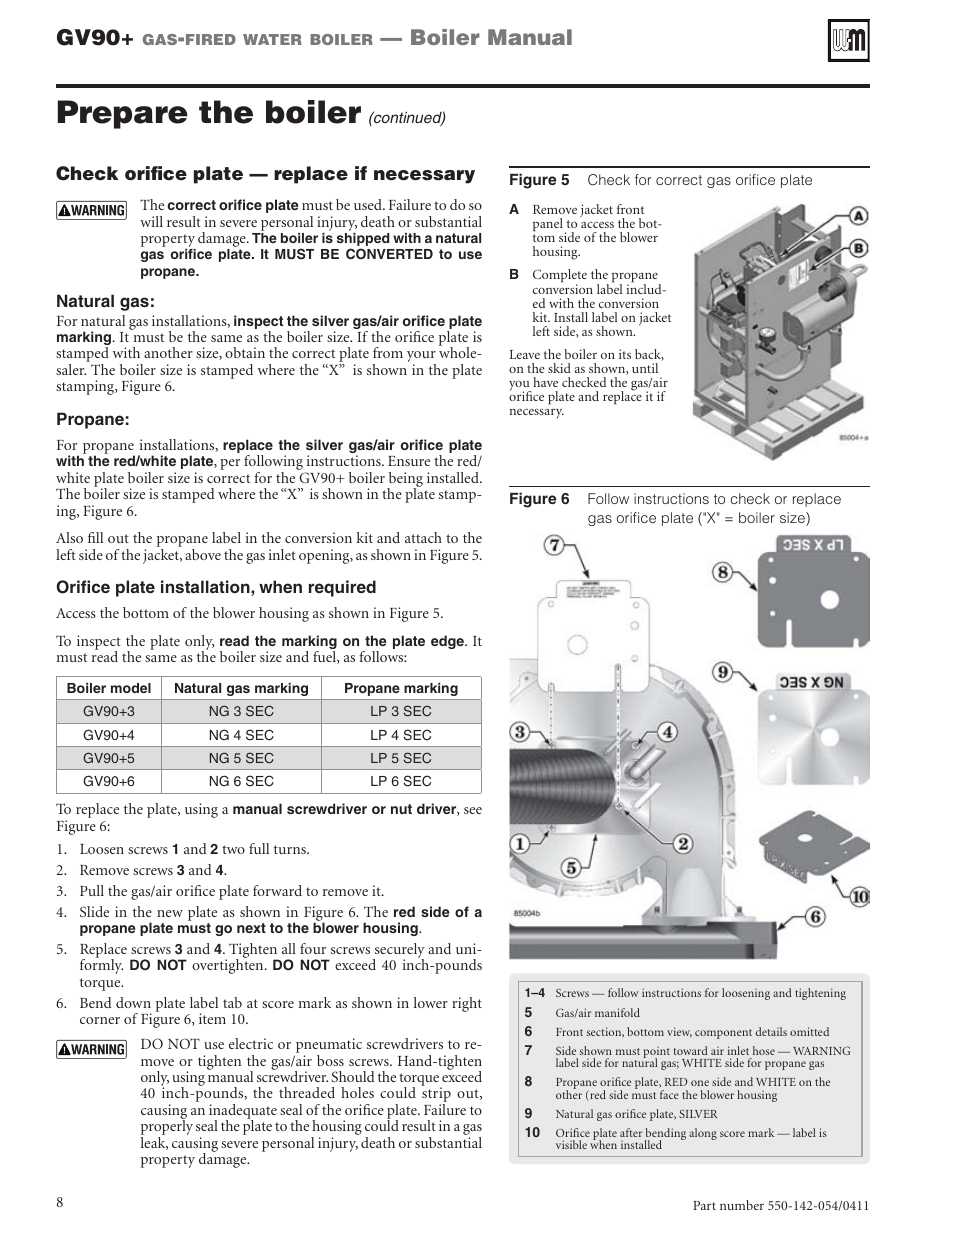 Prepare The Boiler  Gv90  Boiler Manual